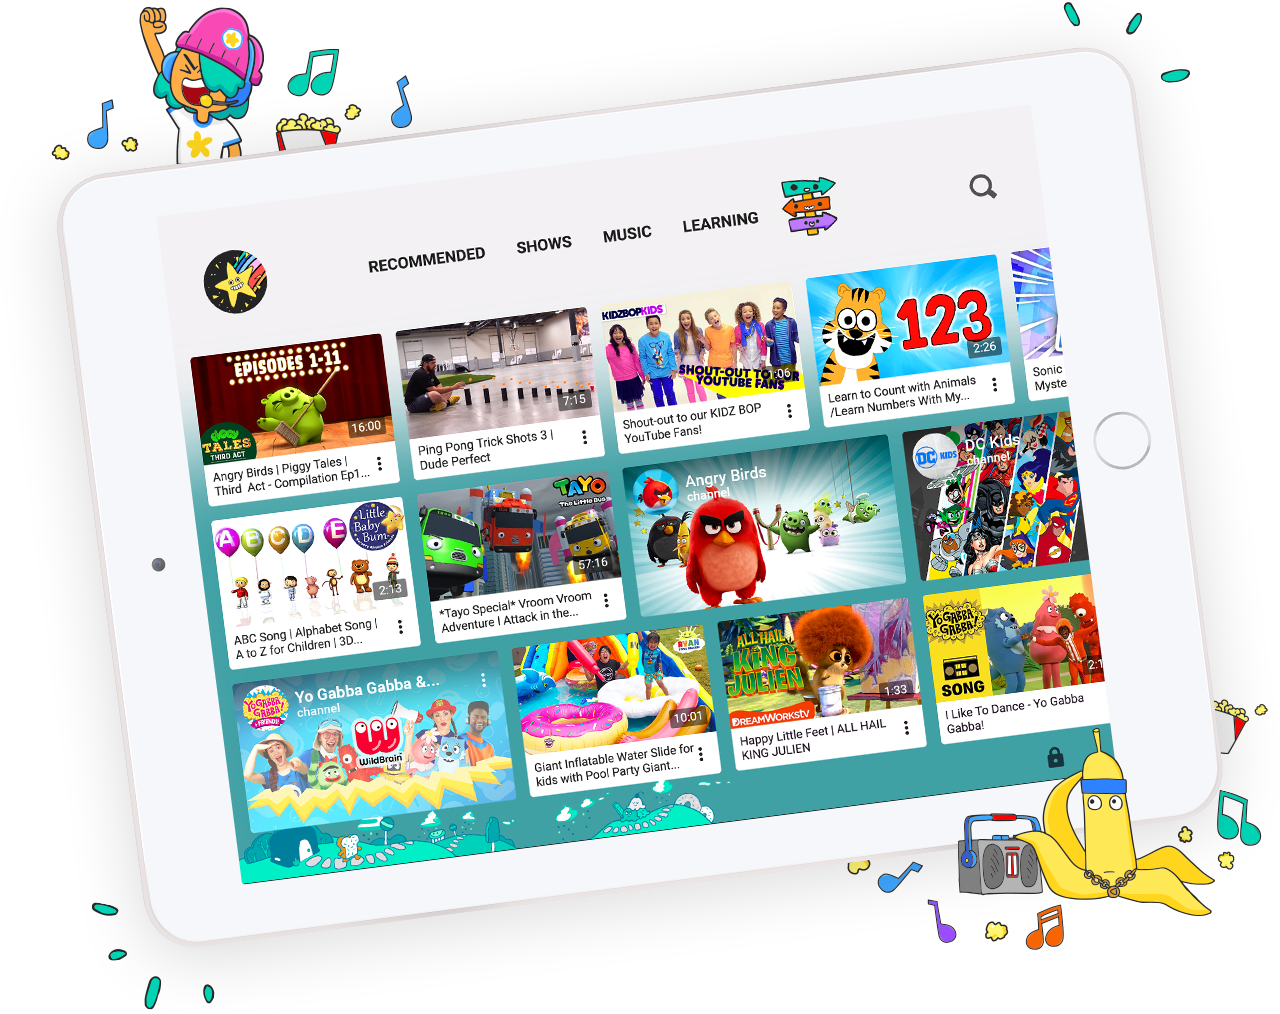 Youtube Introducing kid profiles, new parental controls, and a new exciting look for kids!